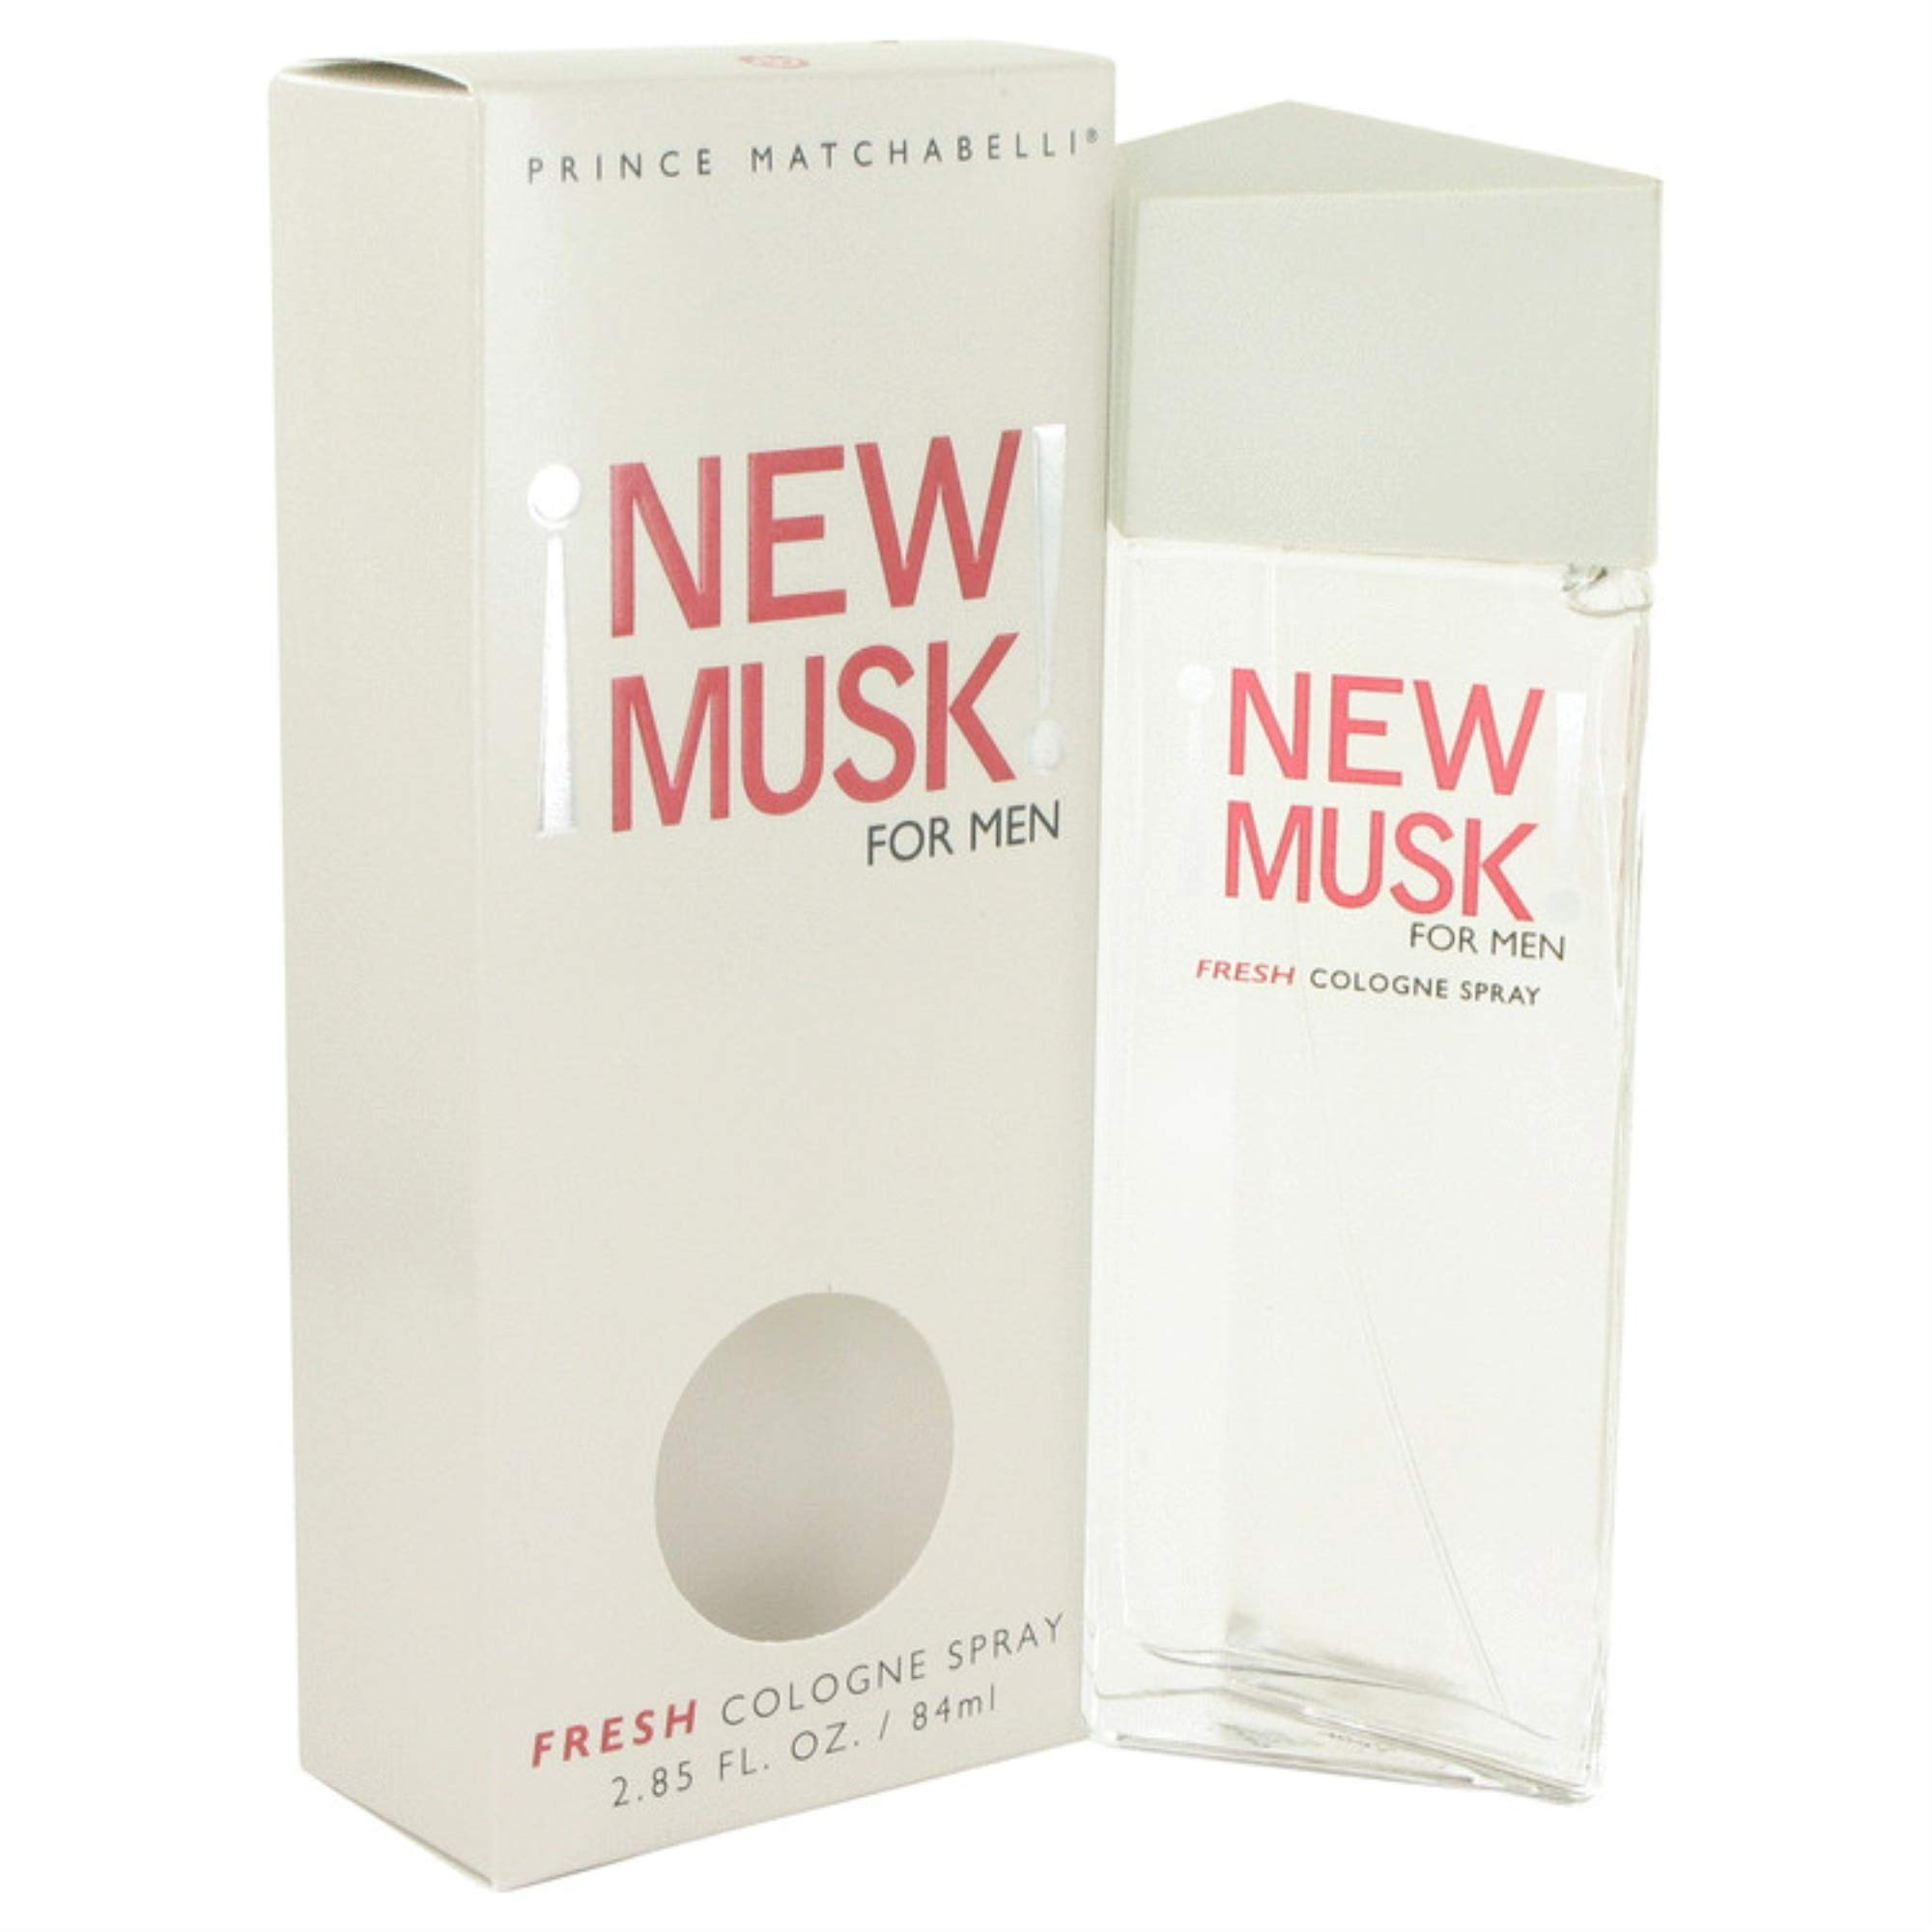 New Musk FOR MEN by Prince Matchabelli - 2.85 oz COL Spray